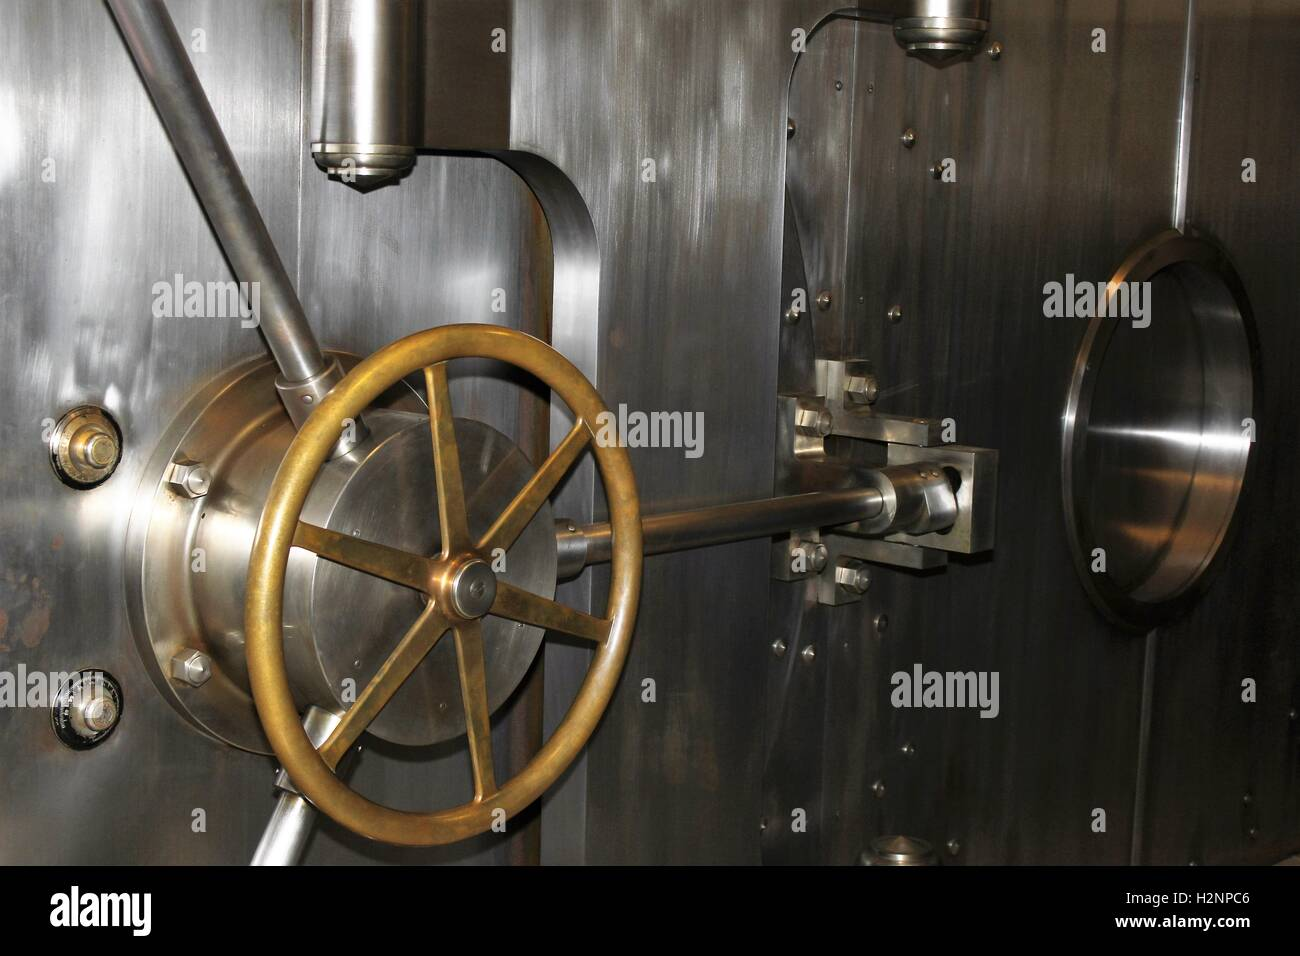 stainless steel and brass bank vault bank door - Stock Image